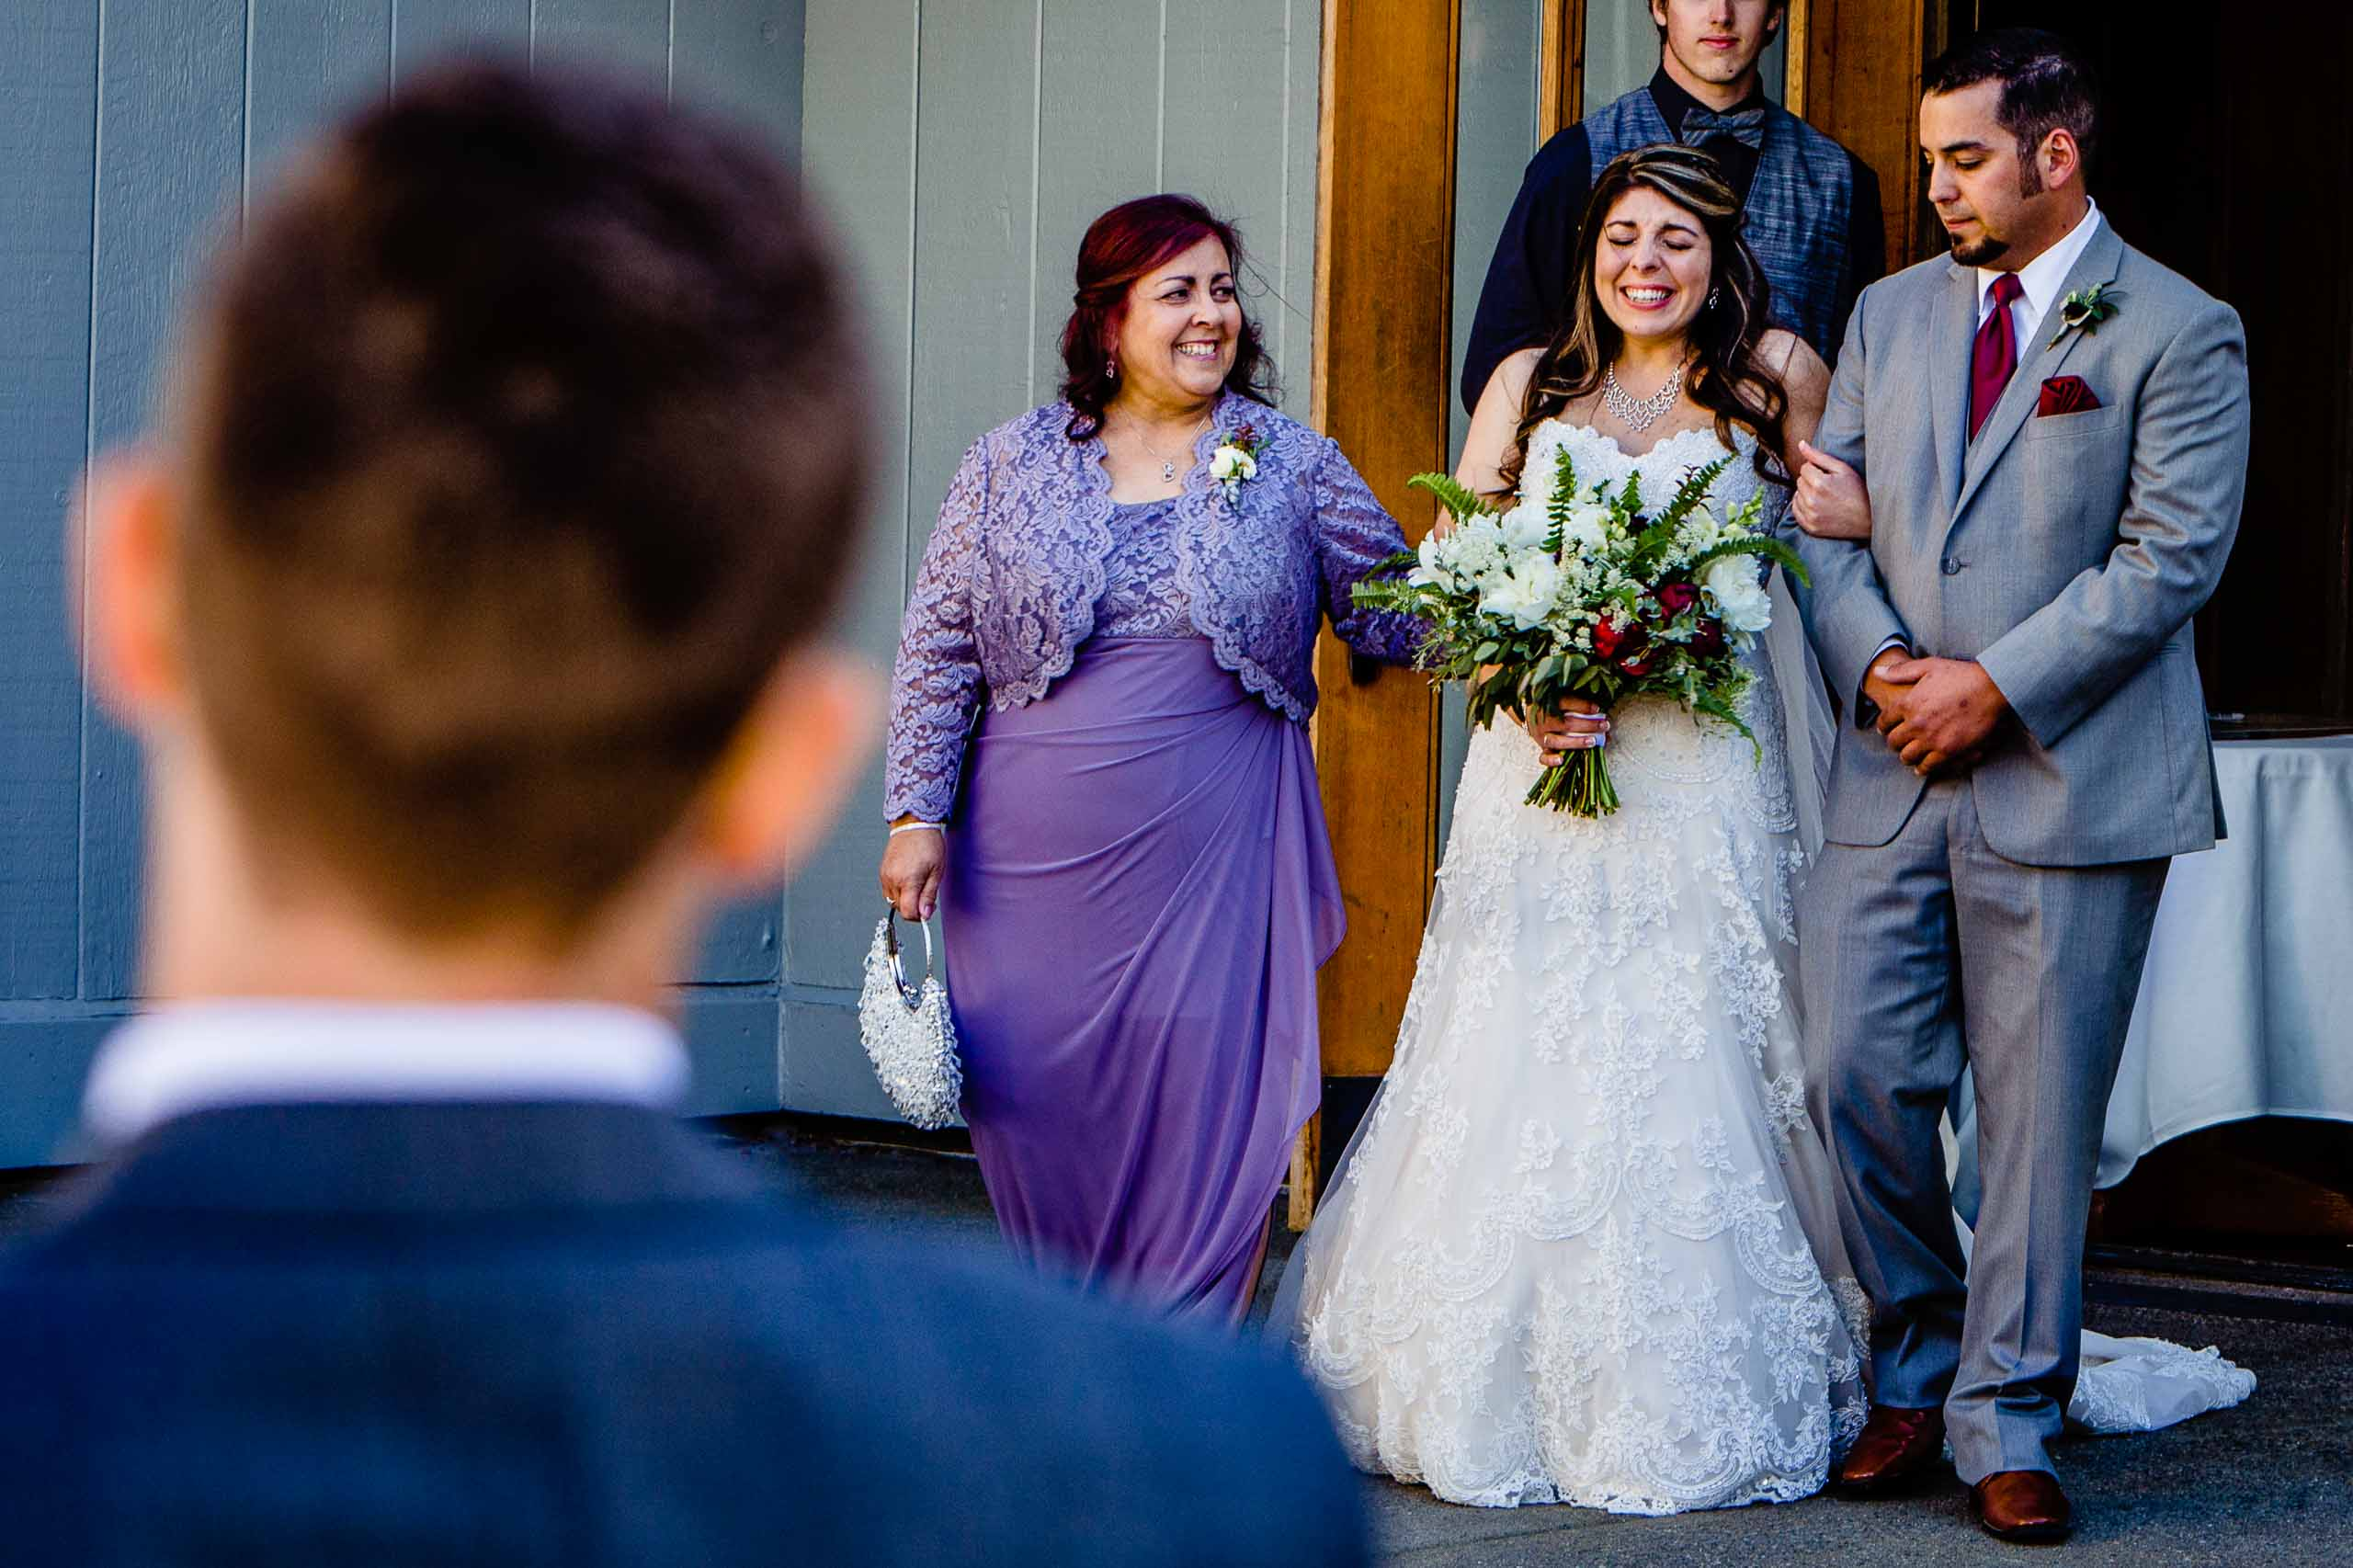 Emotional bride with her mother and brother while walking into her Timberline Lodge Wedding ceremony